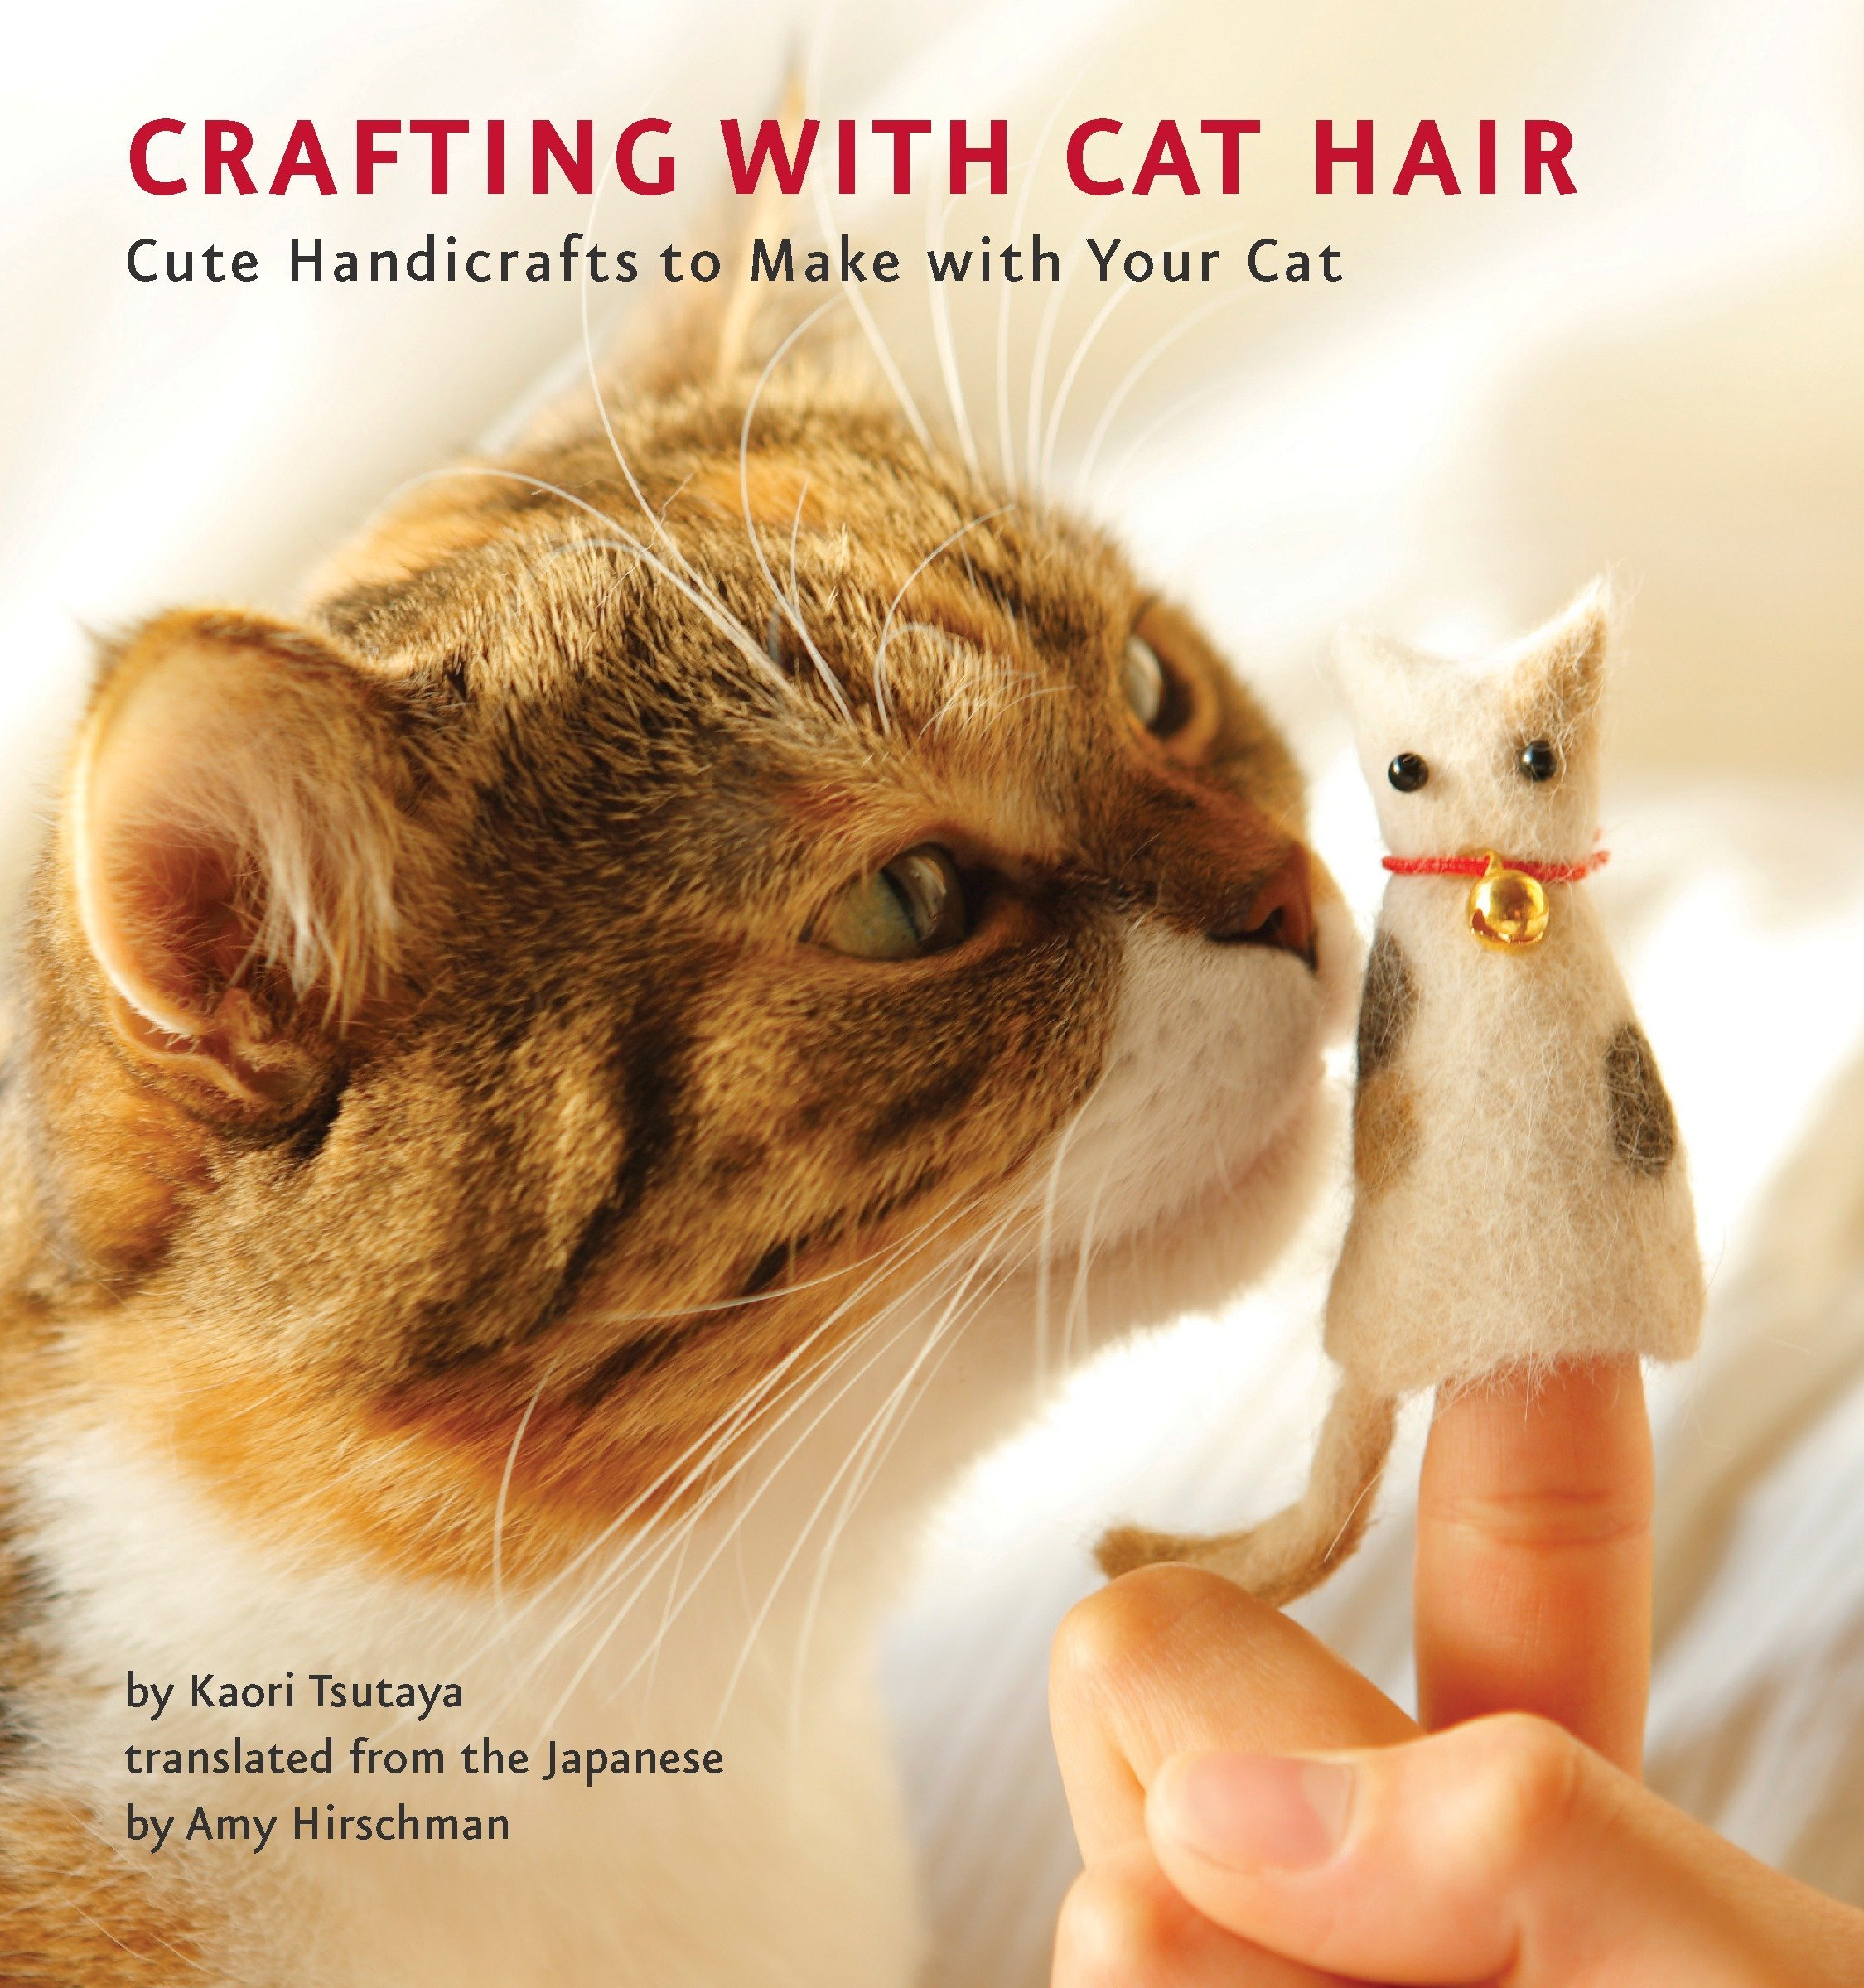 For the super weird cat owner - I don't know that I'd want to craft with cat hair but some other cat owner might…